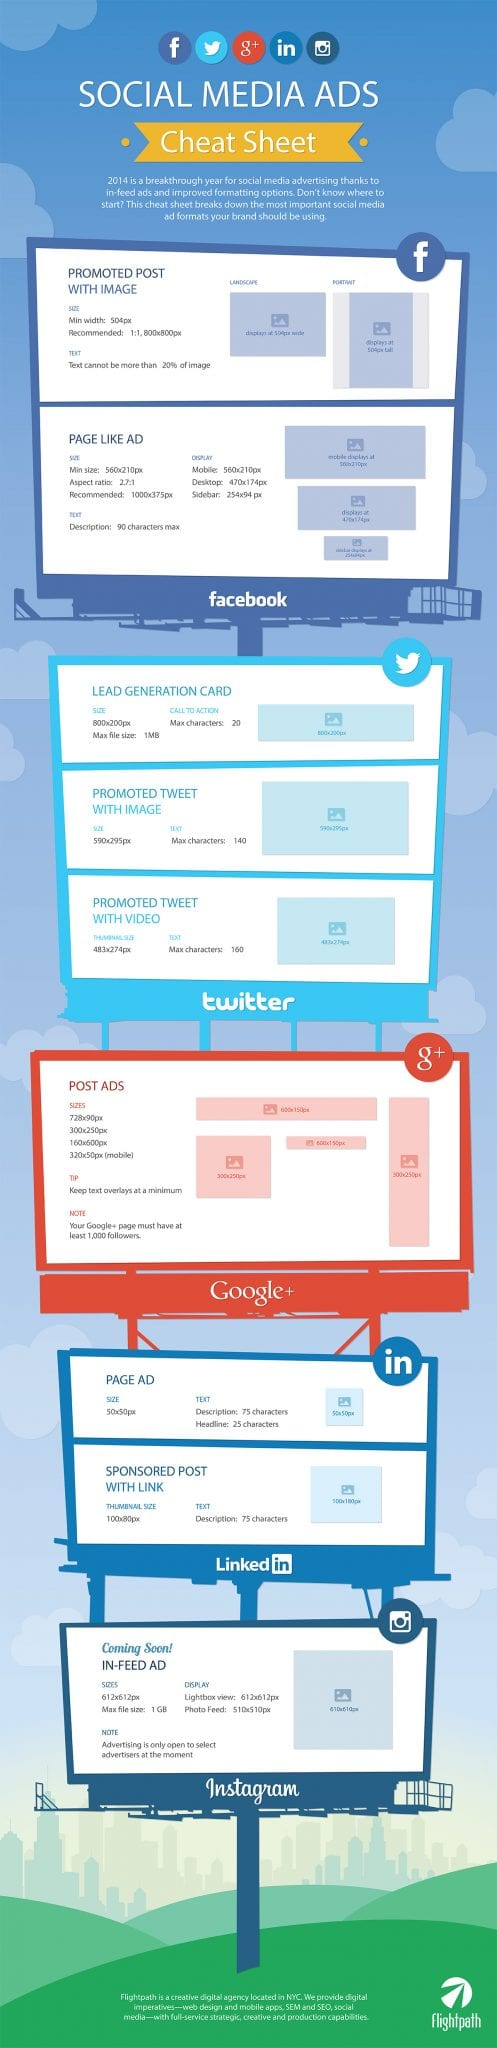 FLI_Infographic_Social-ads-cheat-sheet_v2.1